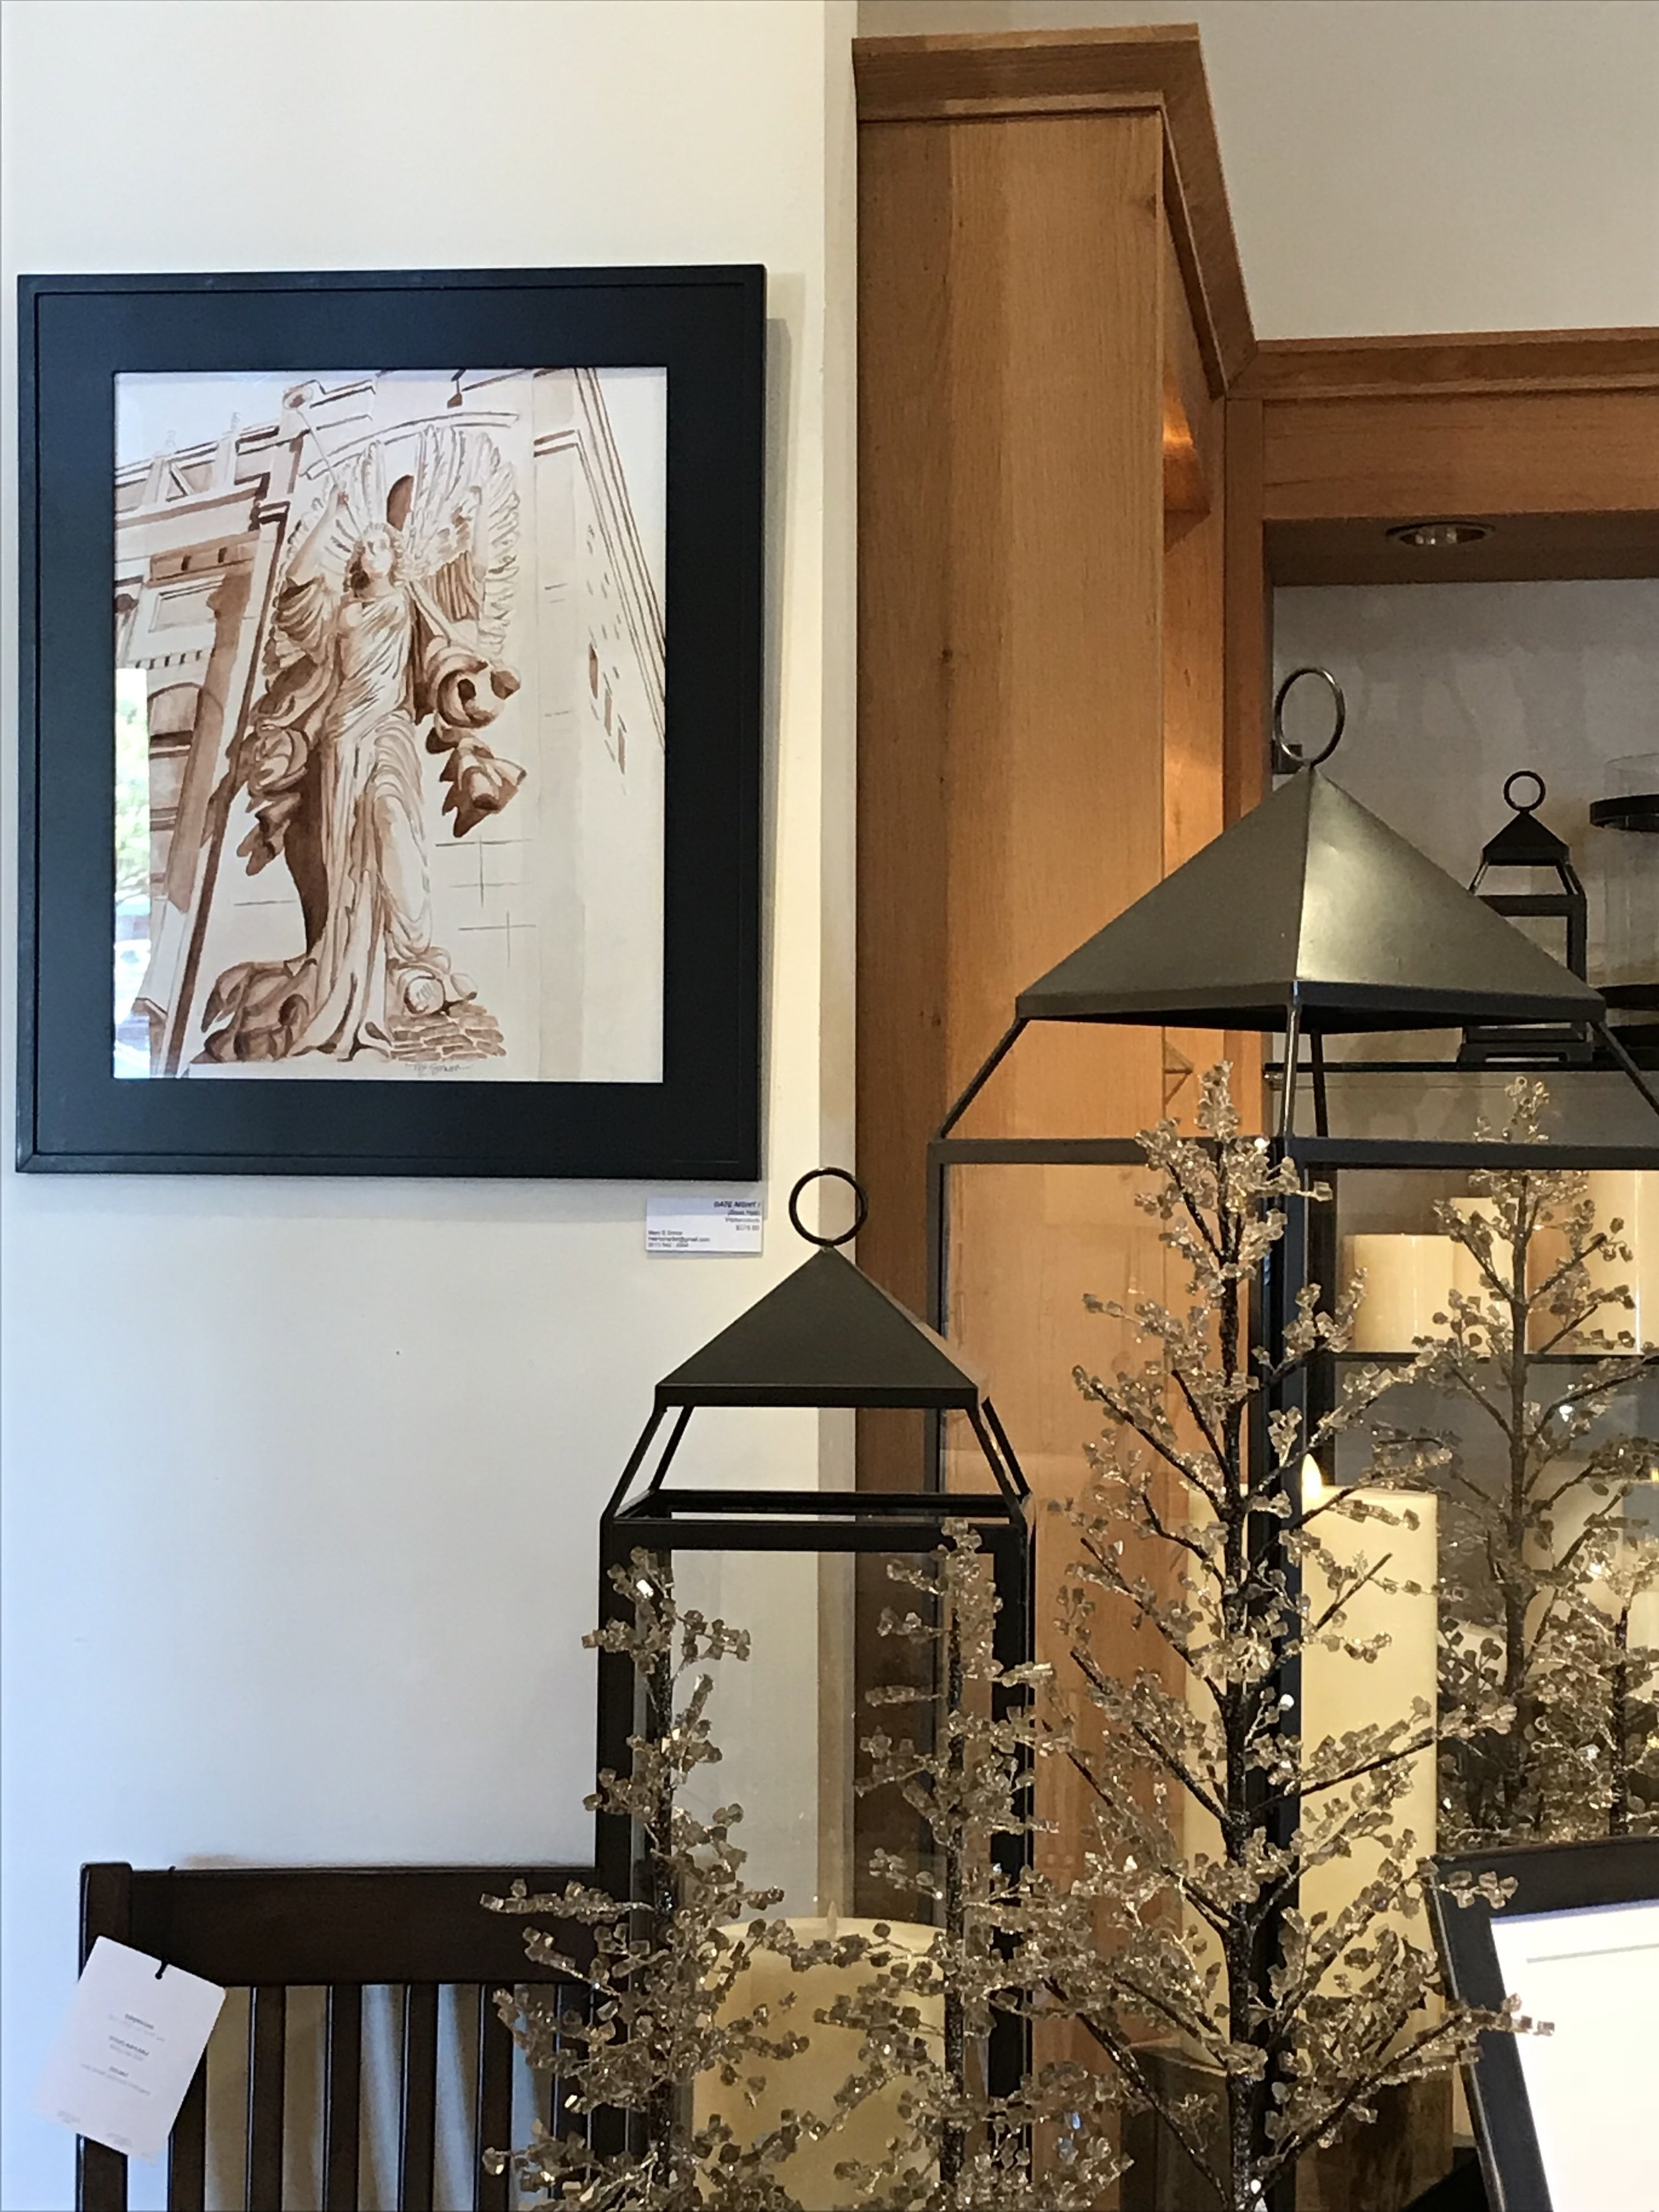 Date Night  (Bass Hall angel, watercolor) hanging at the Pottery Barn, Ft Worth, November 2017. Guest Artist.